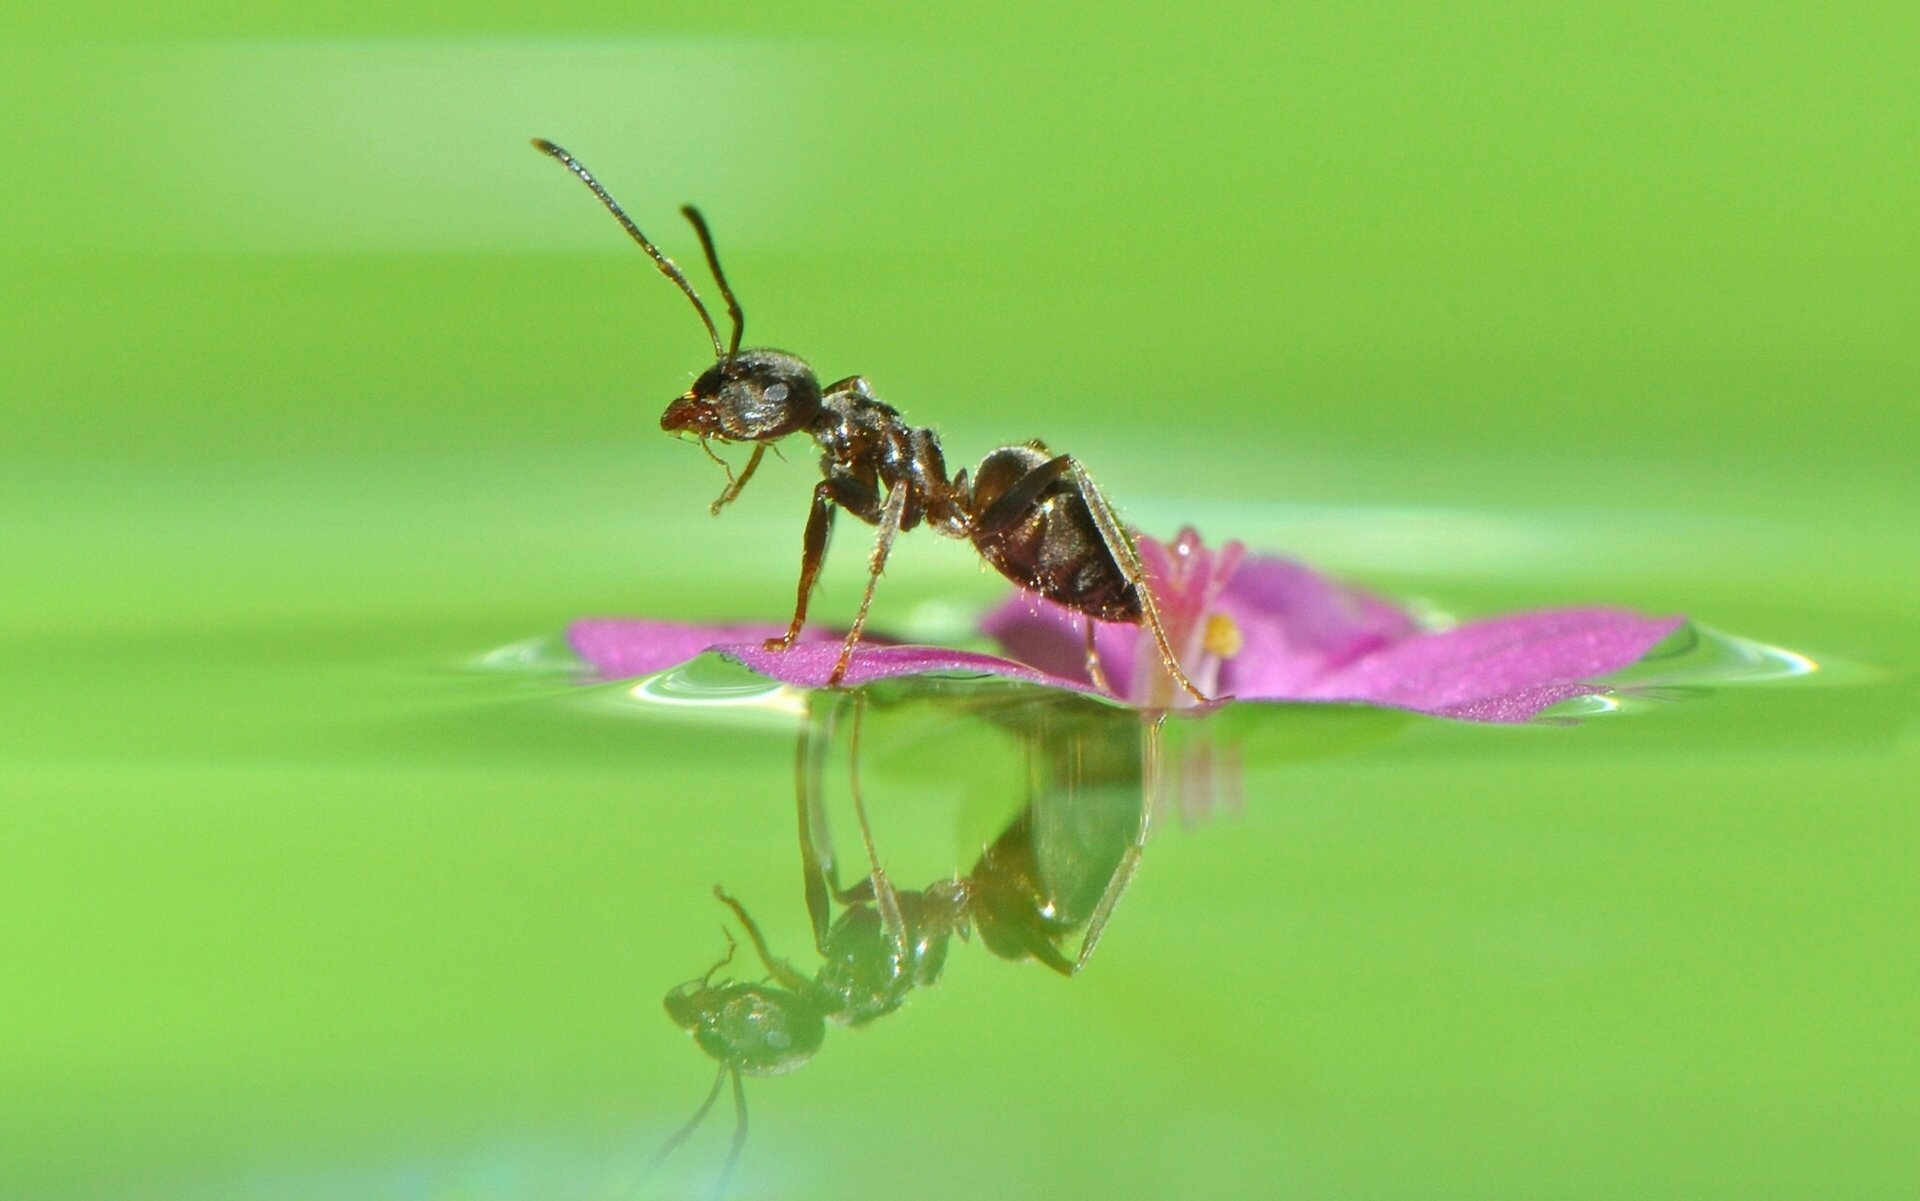 Ant Close Up Wallpapers 44258